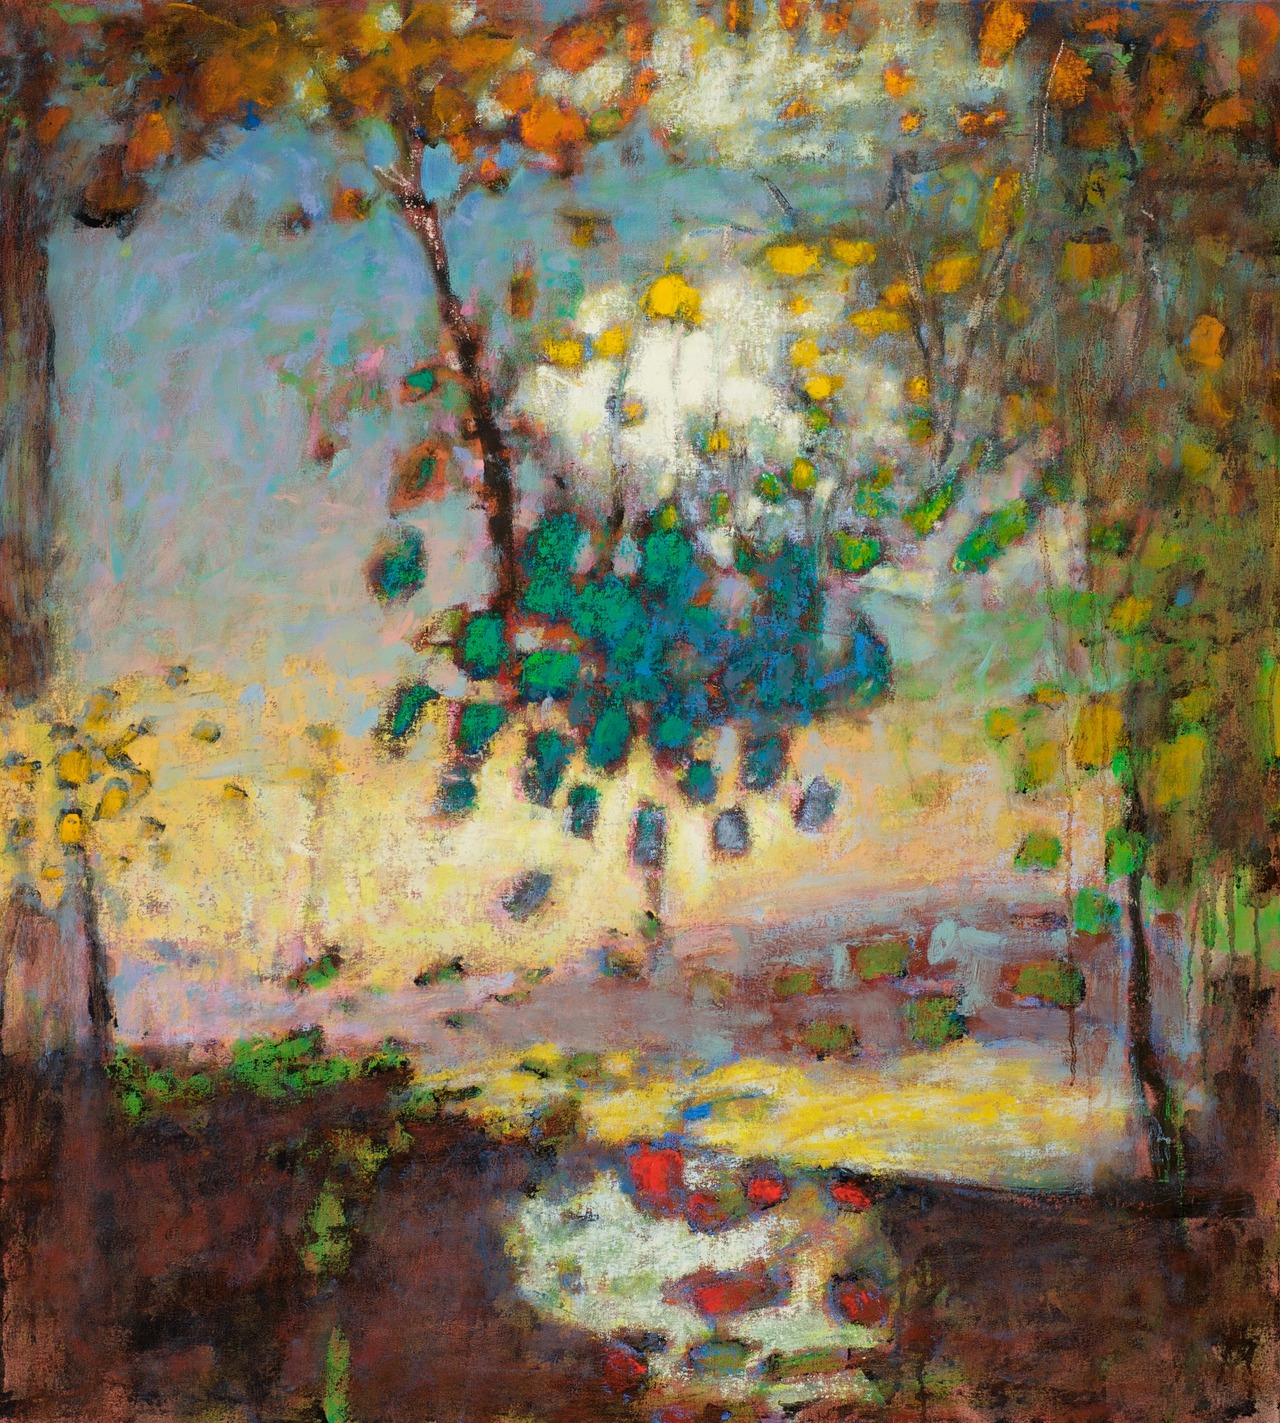 The Breathing Of The World |  oil on Canvas | 40 x 36"